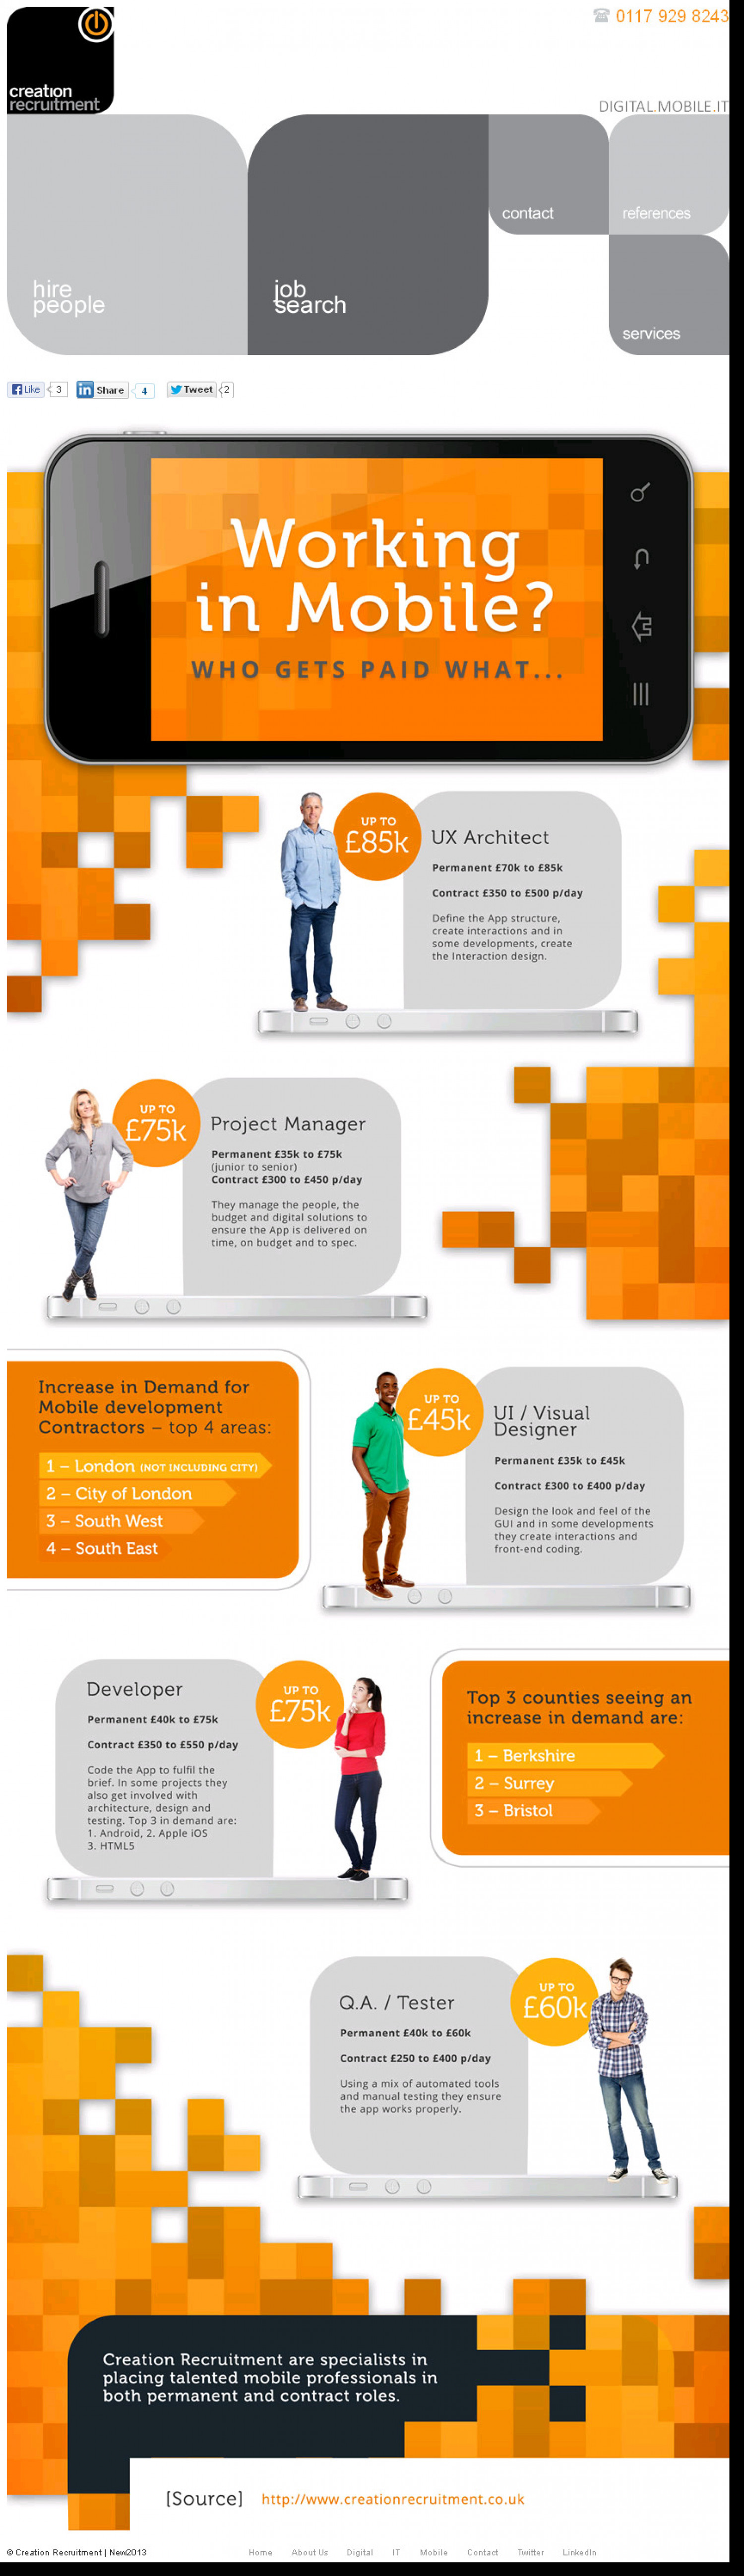 About mobile professional's recruitment and apt placement Infographic